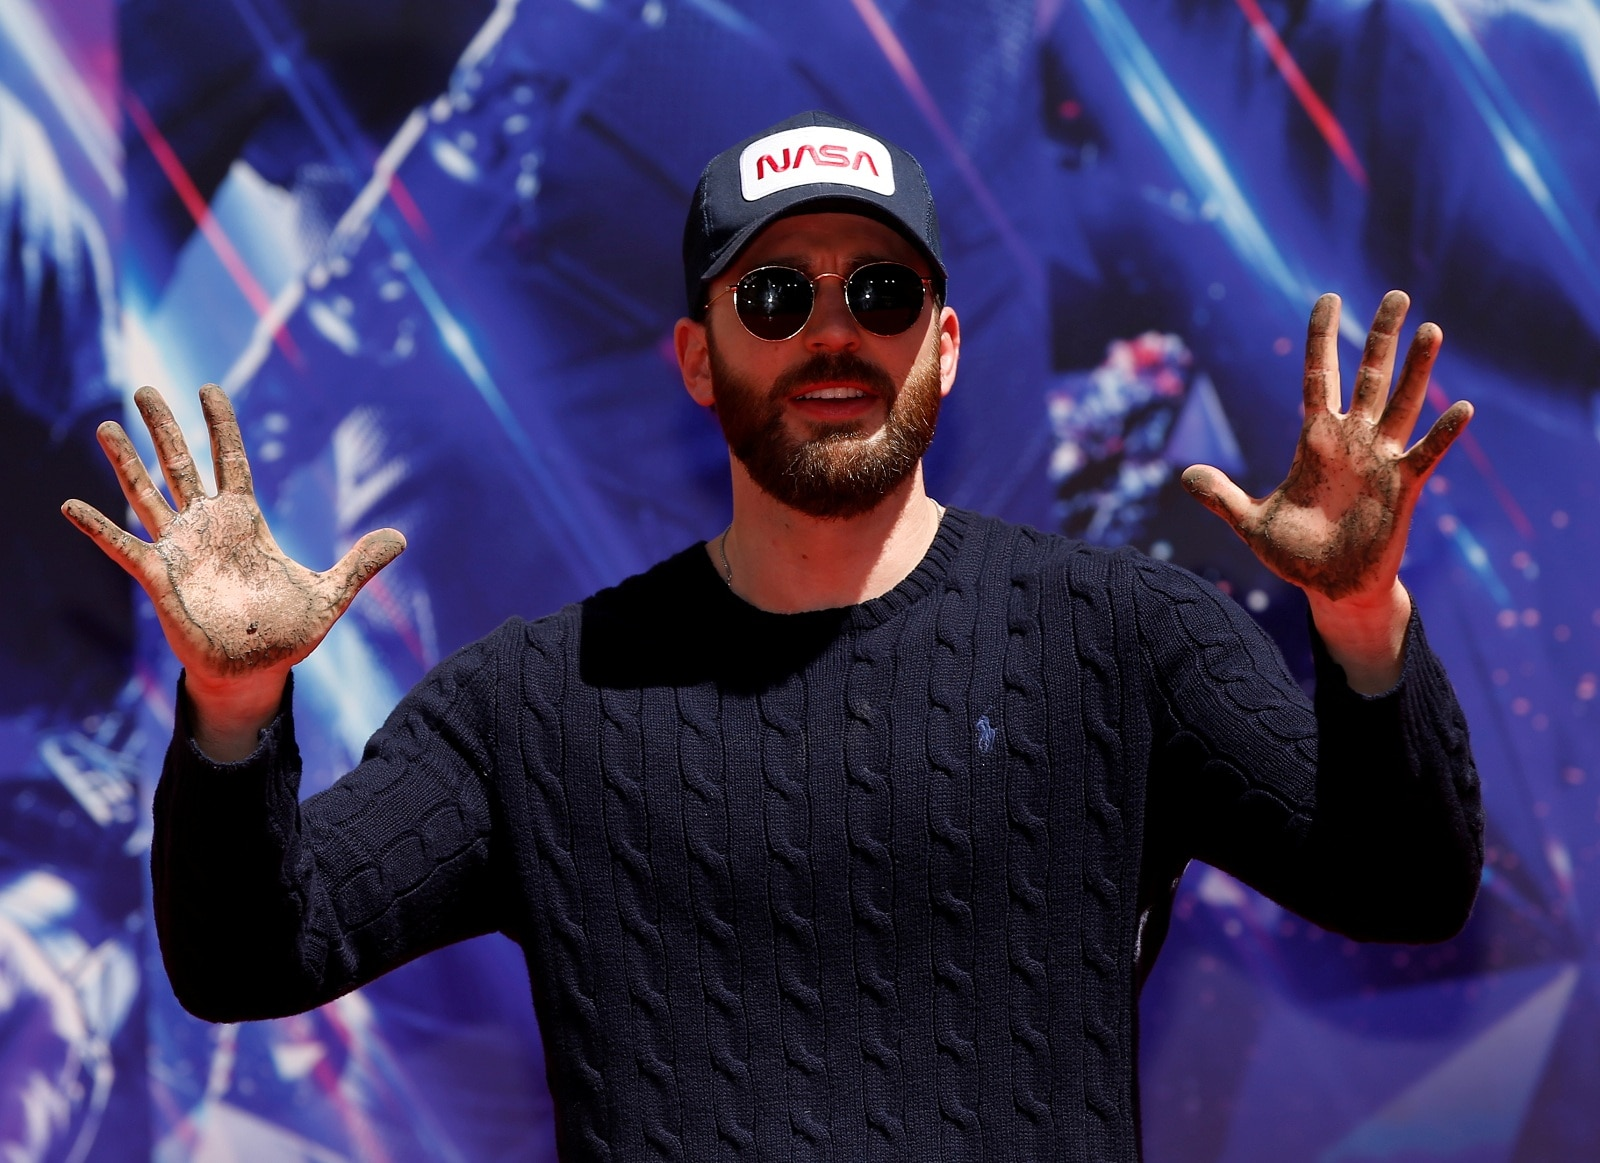 #8. Chris Evans: Net Earnings: $43.5 million. Best known for playing Captain America, Evans' hefty 'Avengers: Endgame' salary and backend points land him on the Celebrity 100 for the first time. Evans keeps busy when he's not saving the universe, with roles in 'Knives Out' and 'The Red Sea Diving Report.' He is returning to the small screen, where he got his start, with upcoming Apple TV+ series 'Defending Jacob.' (Image: Reuters)